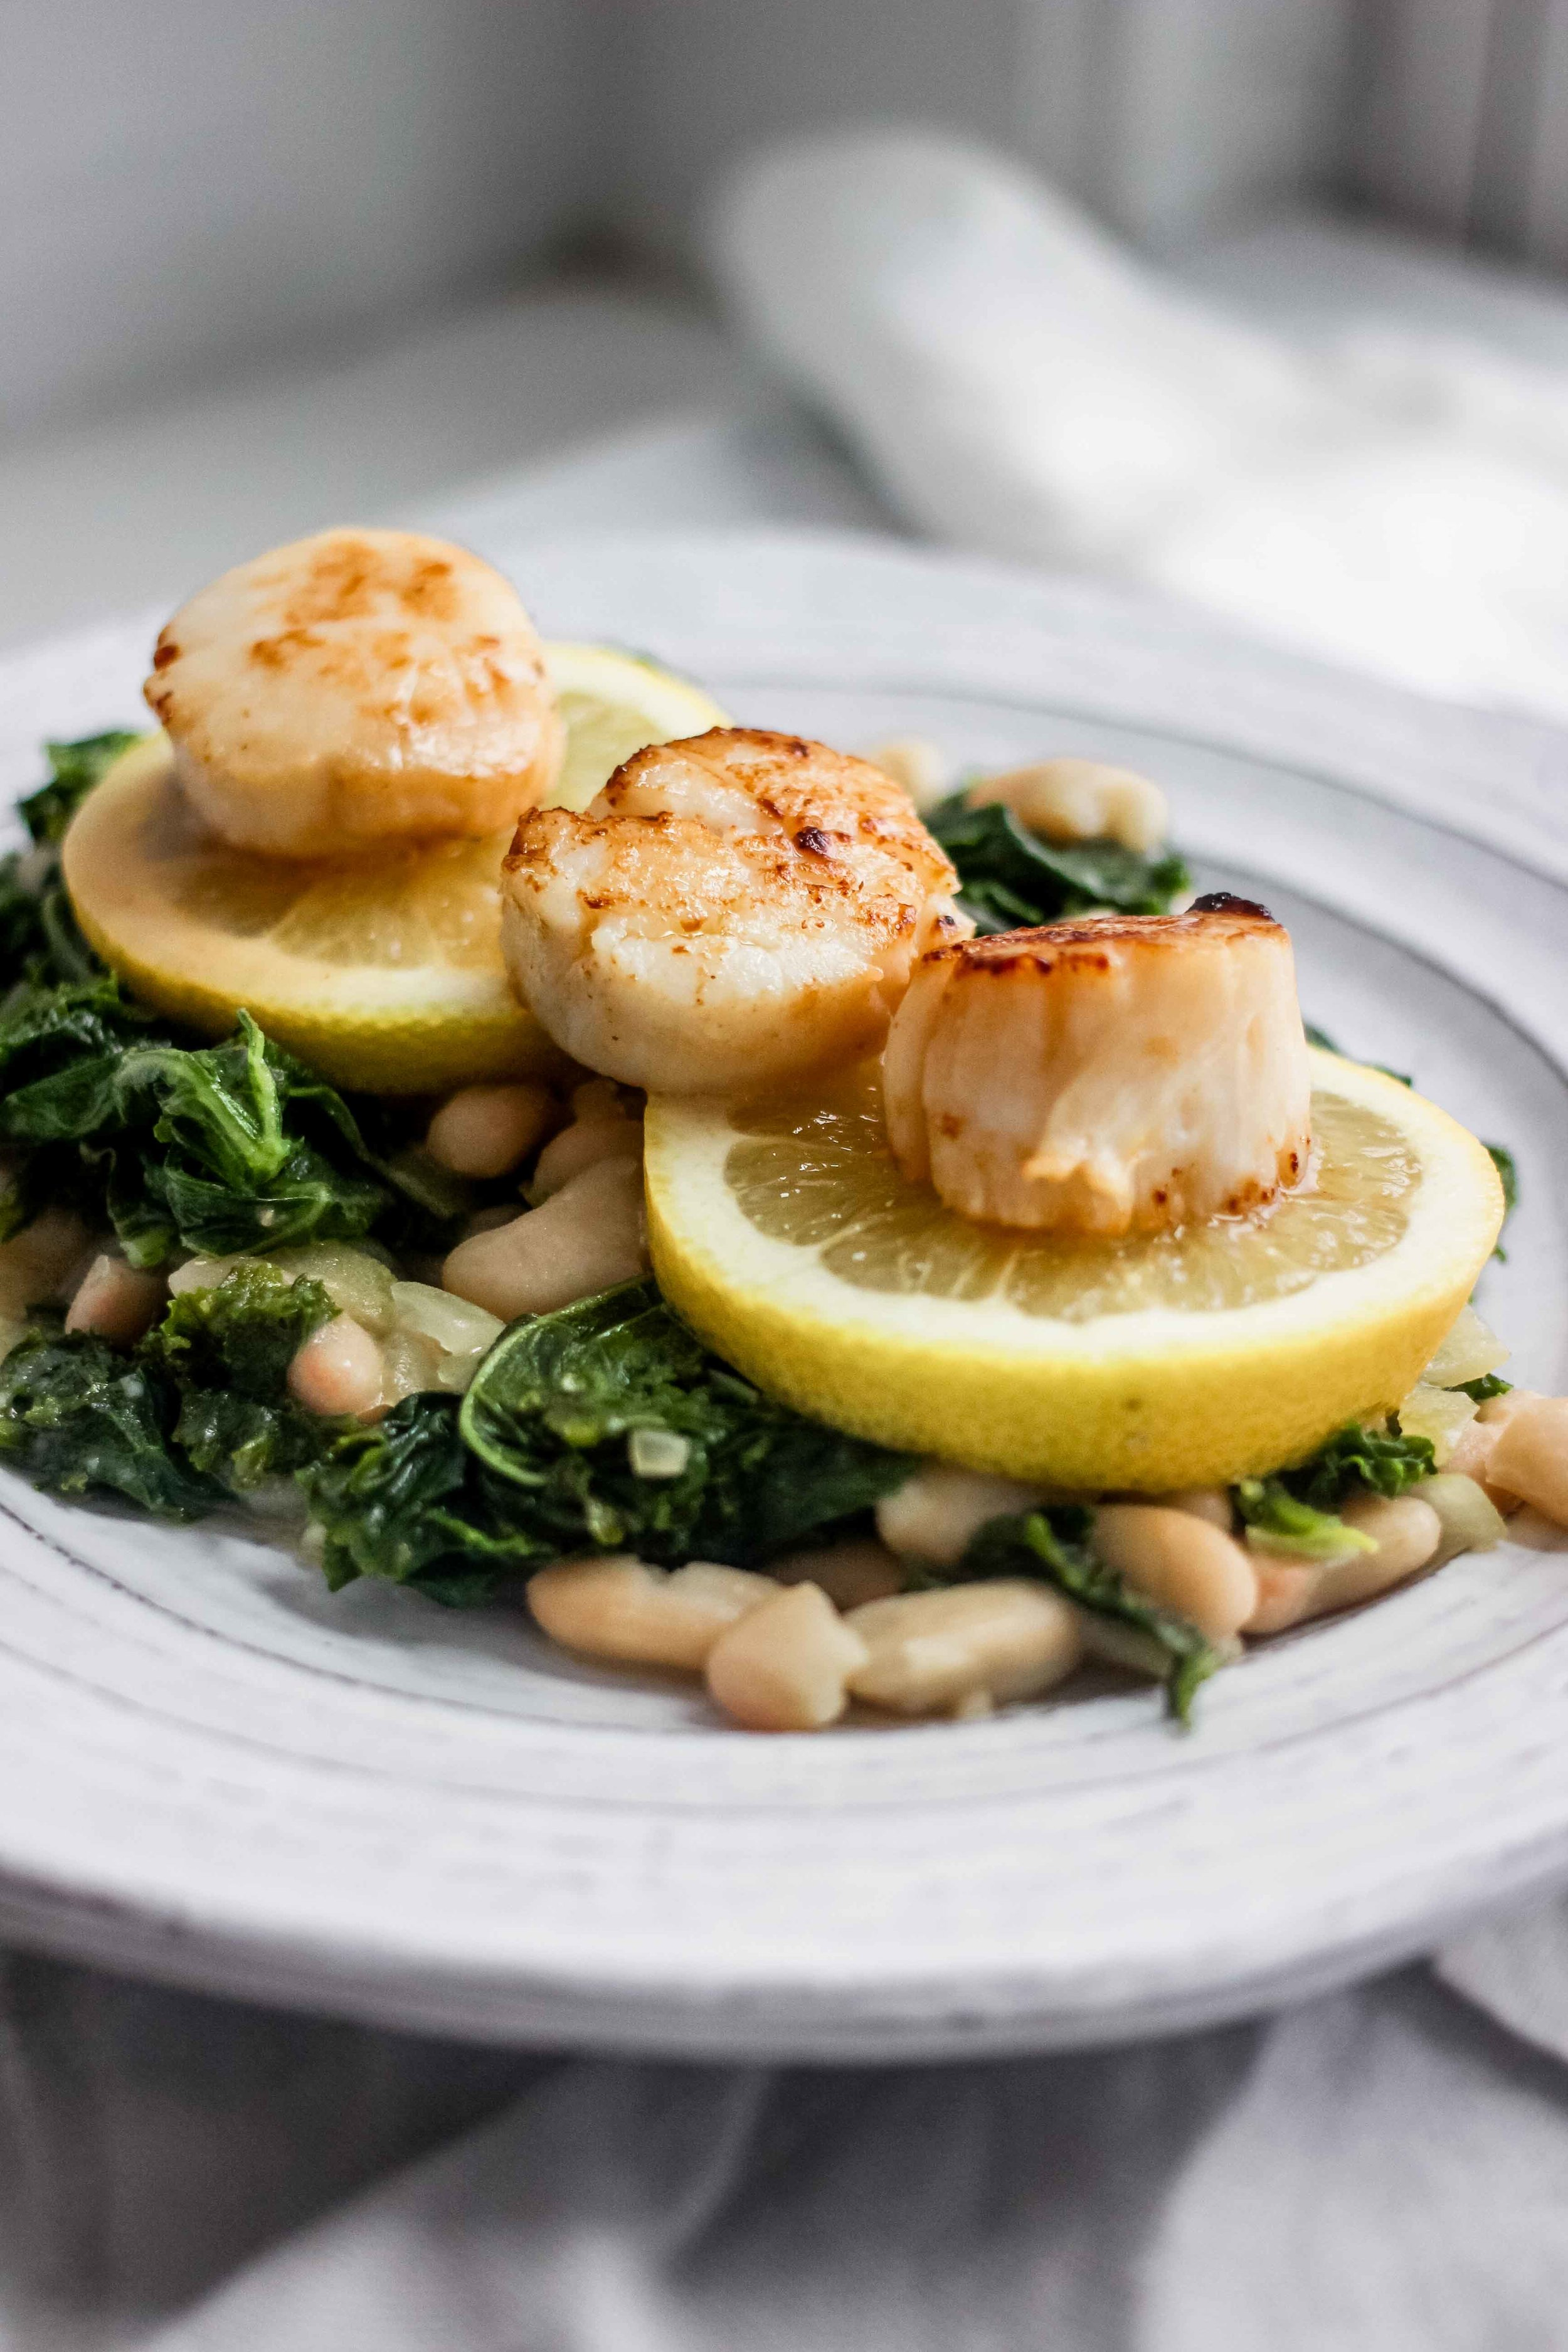 Seared Lemon Butter Scallops With Kale and White Beans - The Well Essentials